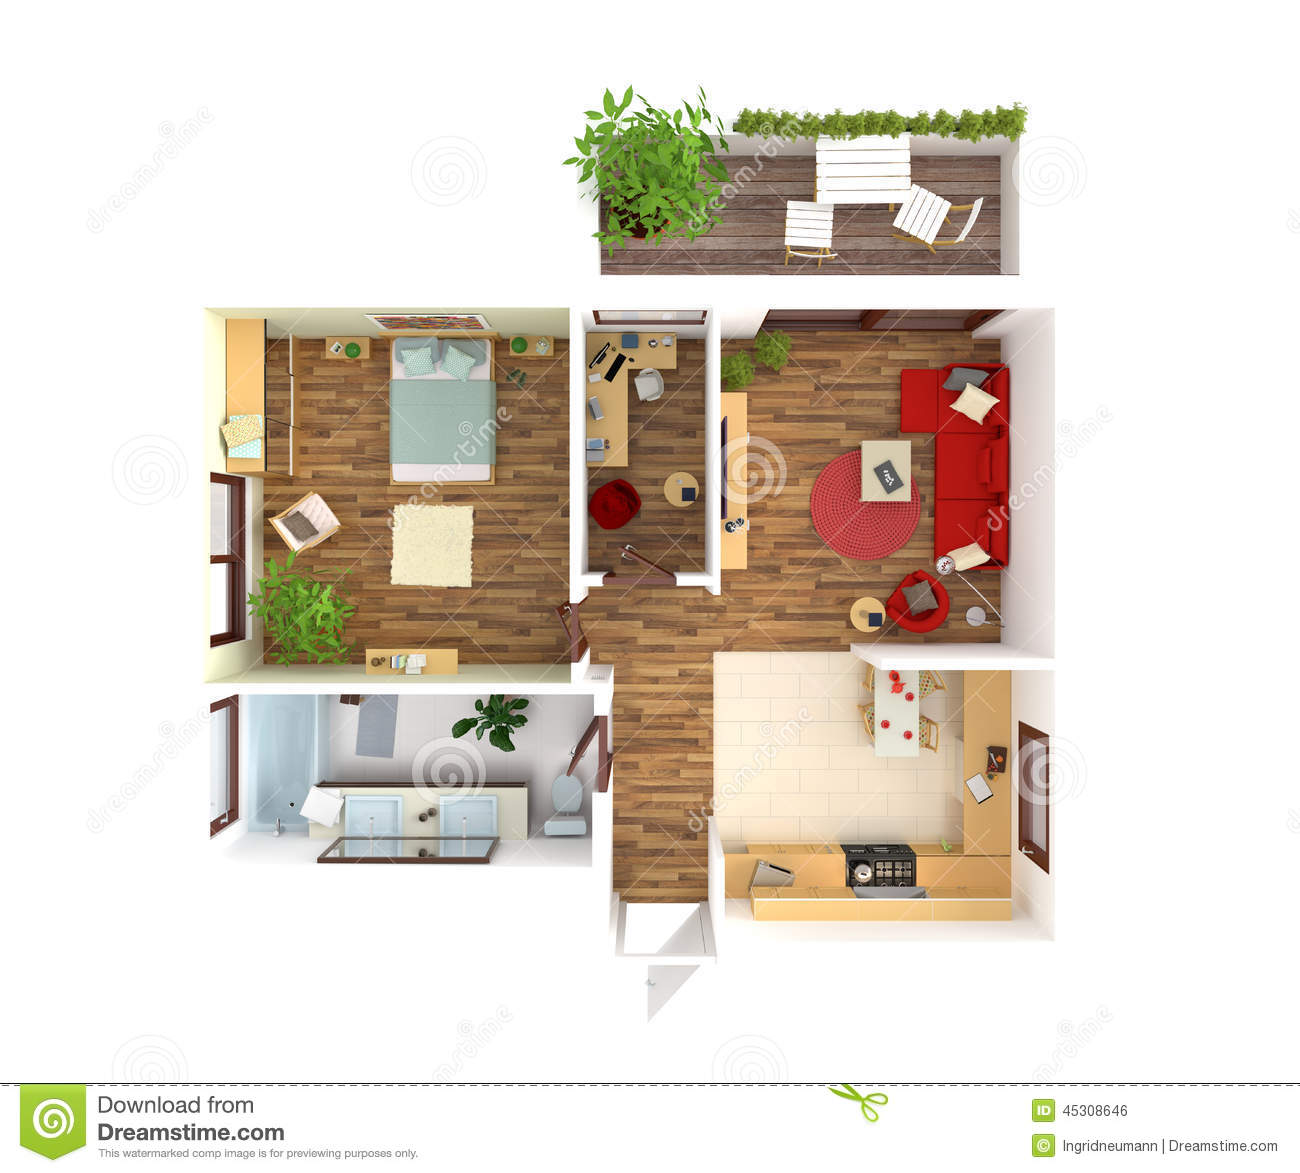 house plan top view interior design apartment kitchen dining living bedroom hall bathroom 45308646